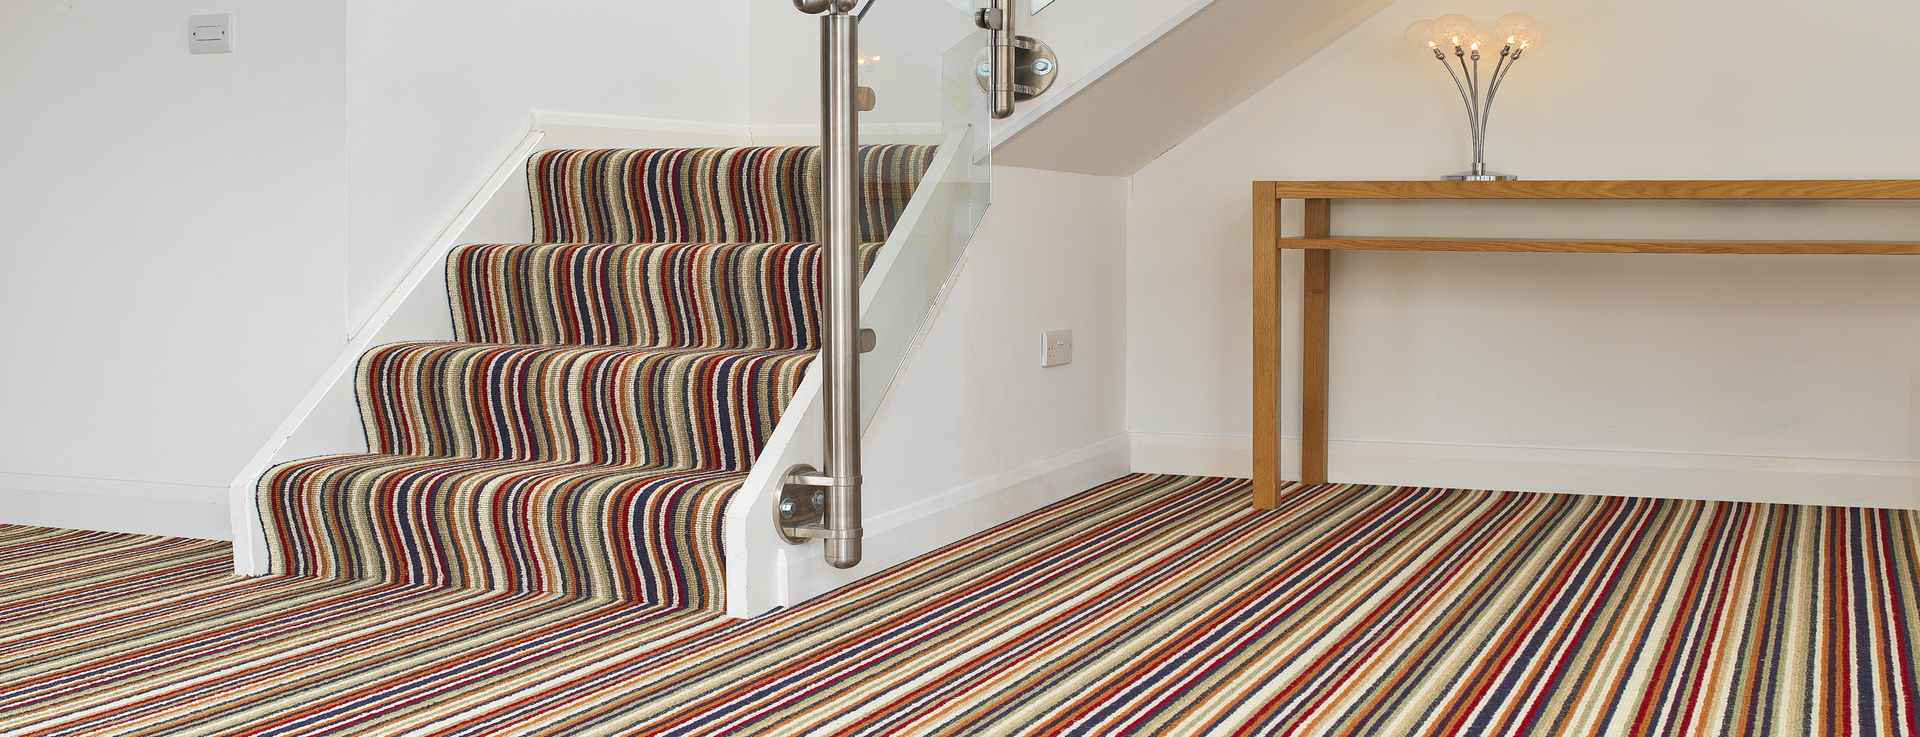 Strata Is Our Seriously Stripy Carpet Range A Real Design Statement